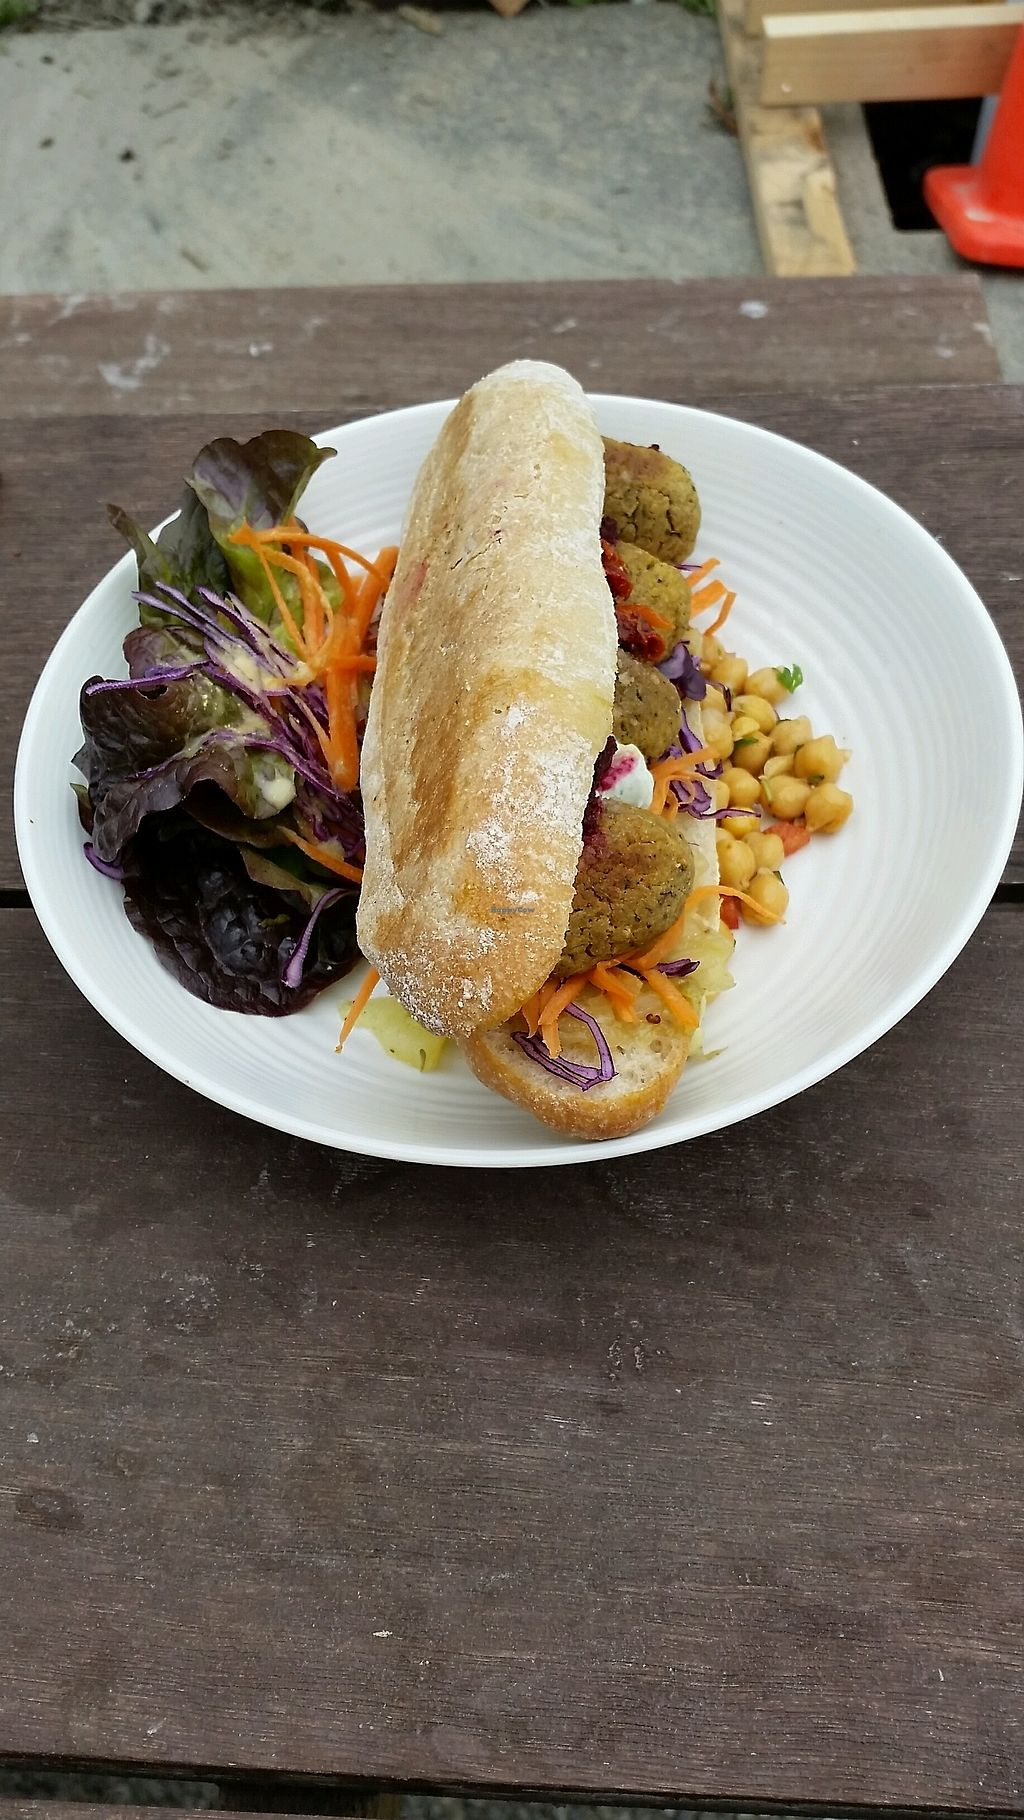 """Photo of Food Forest Organics  by <a href=""""/members/profile/AndyTheVWDude"""">AndyTheVWDude</a> <br/>Falafels, salad & potatoes ~ Tasty! <br/> November 12, 2017  - <a href='/contact/abuse/image/56720/324828'>Report</a>"""